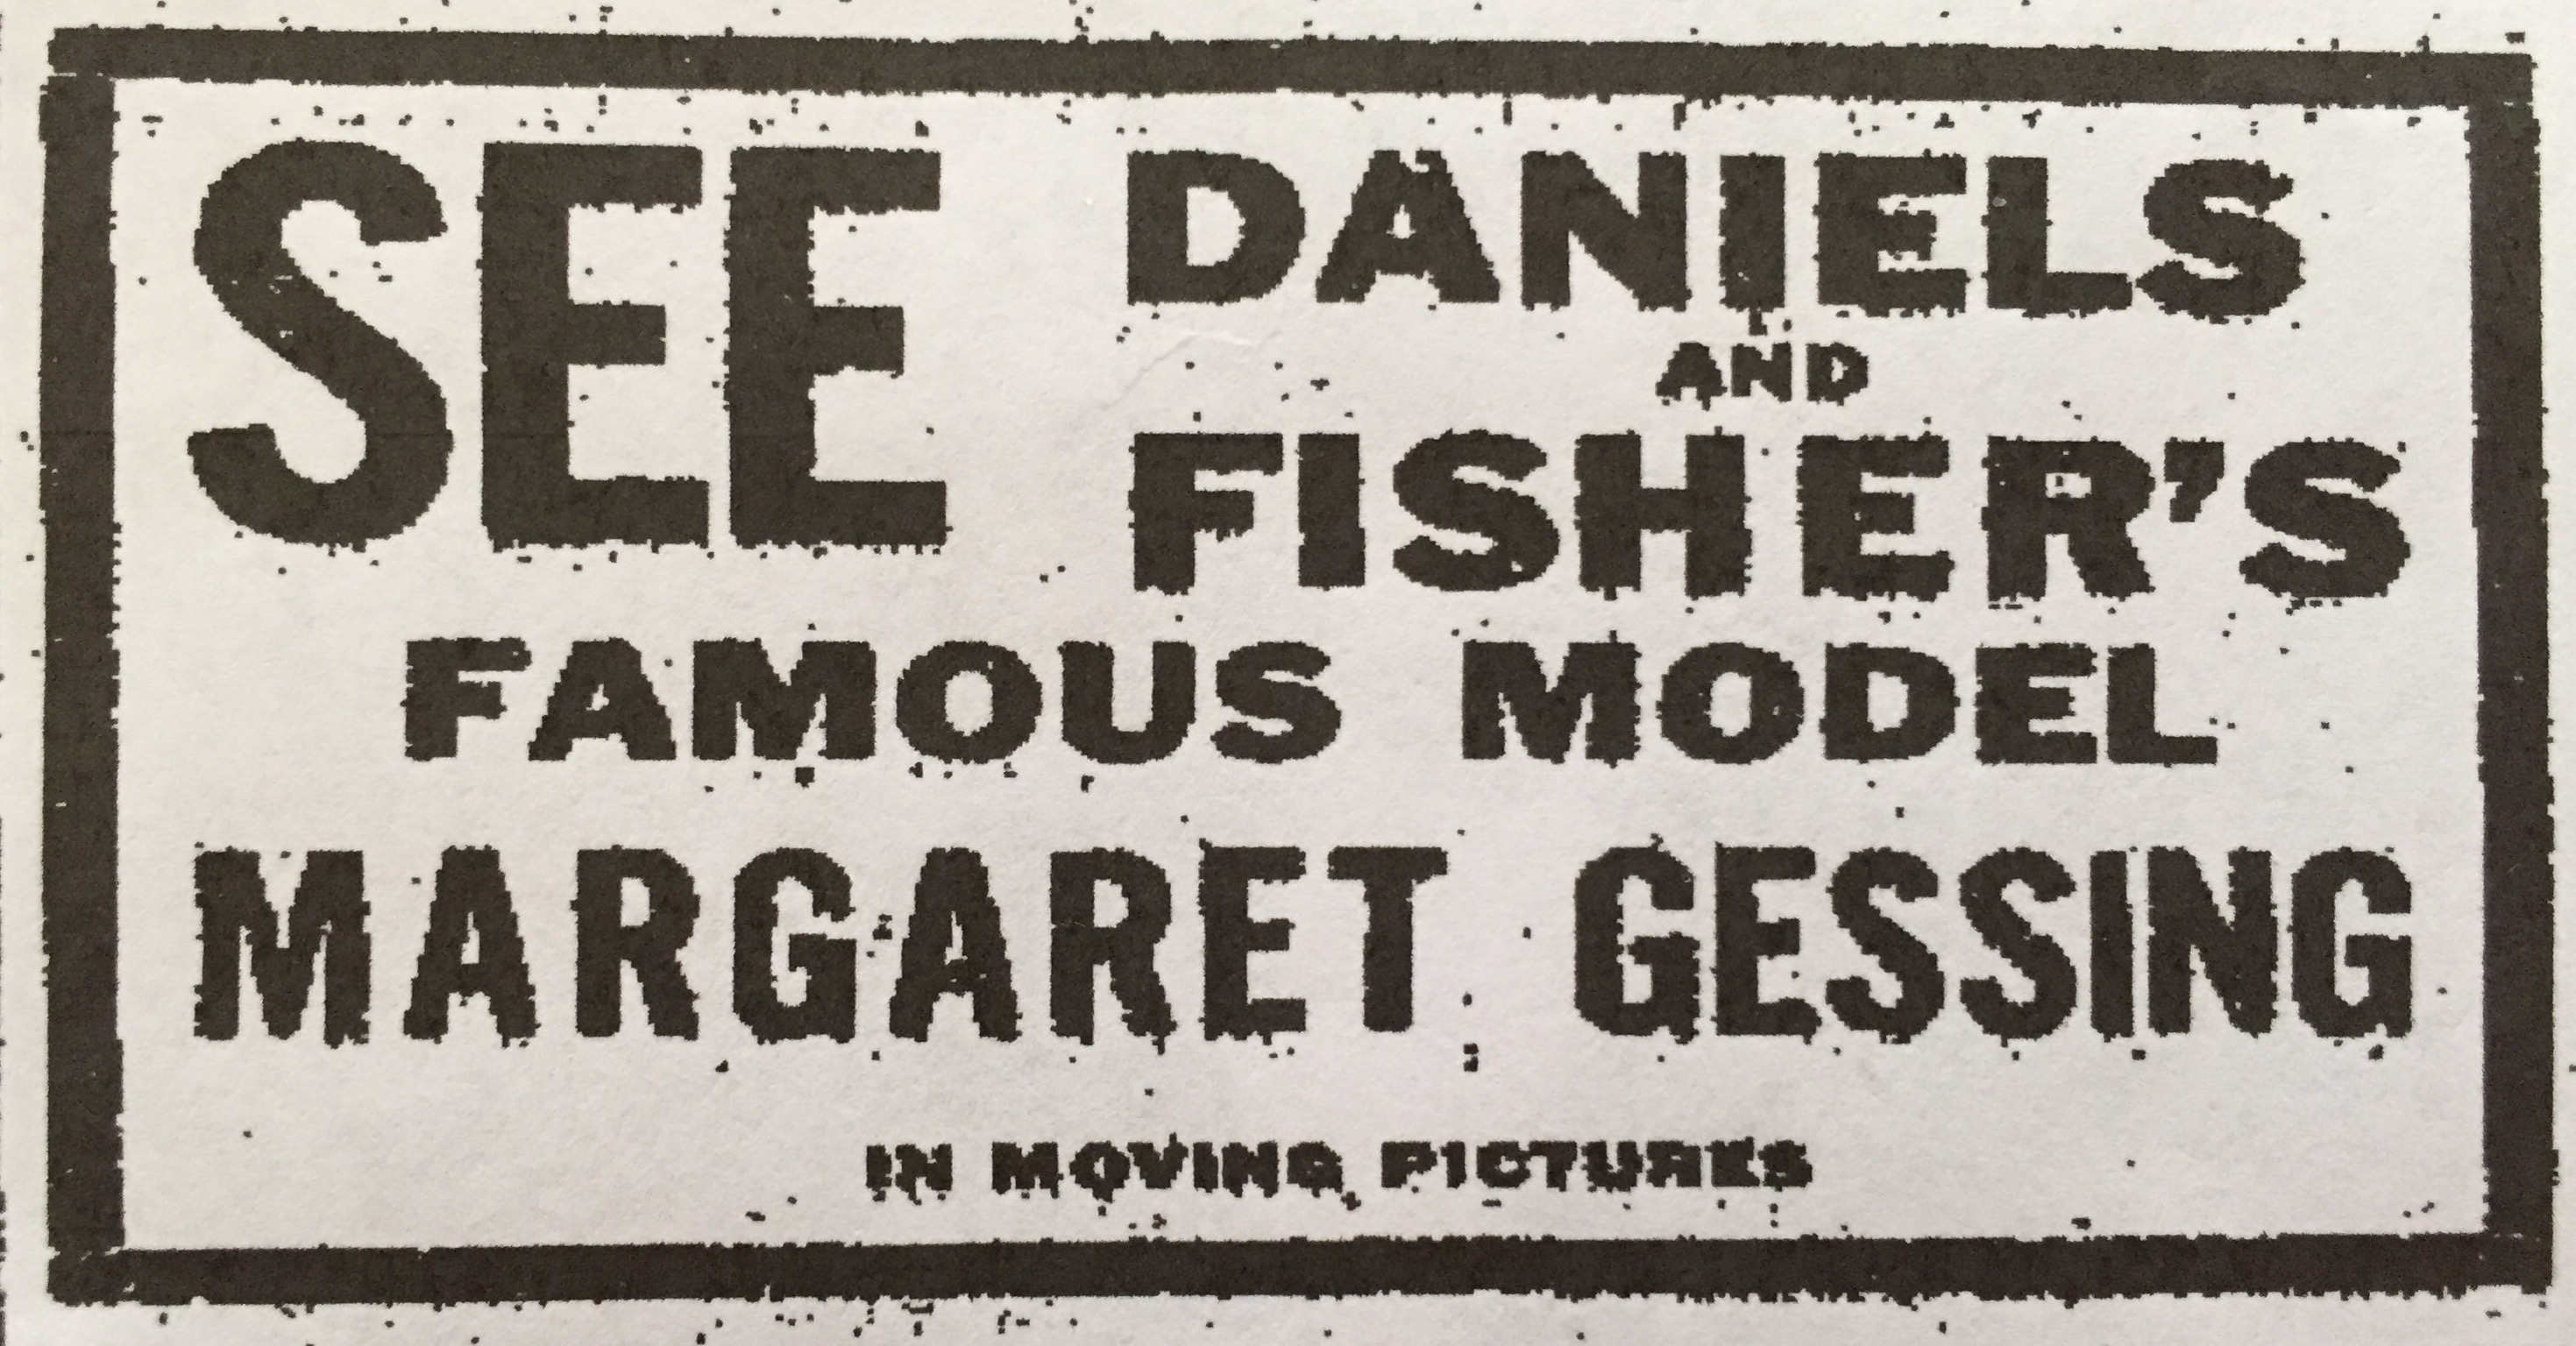 A print advertisement that appeared in the Denver Post reading See Daniels and Fisher's famous model Margaret Gessing